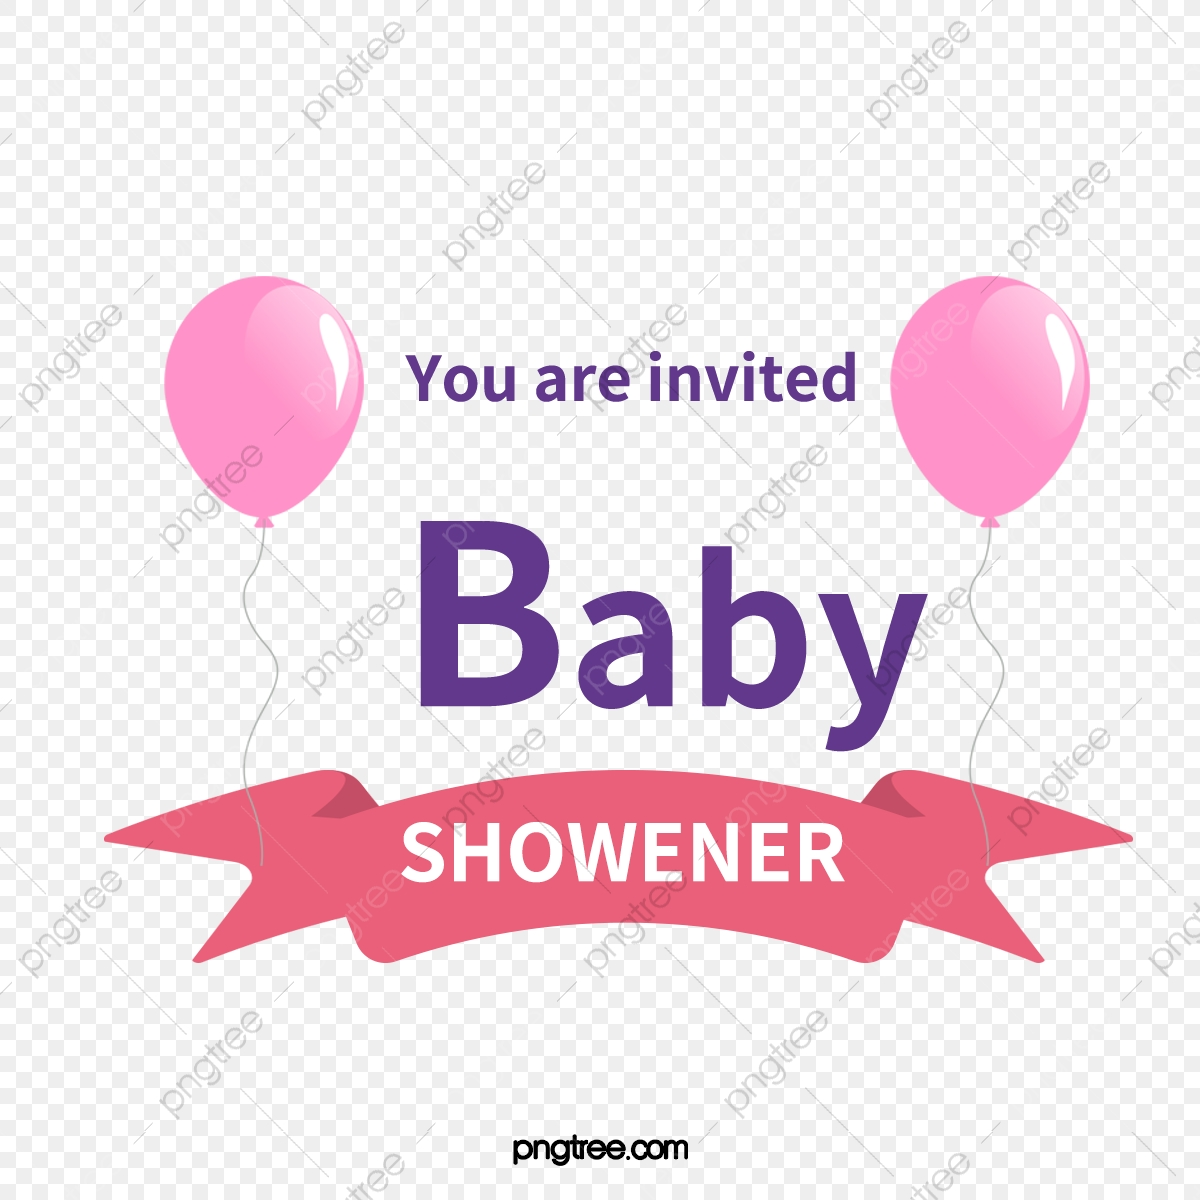 Baby Shower Png Images Vector And Psd Files Free Download On Pngtree